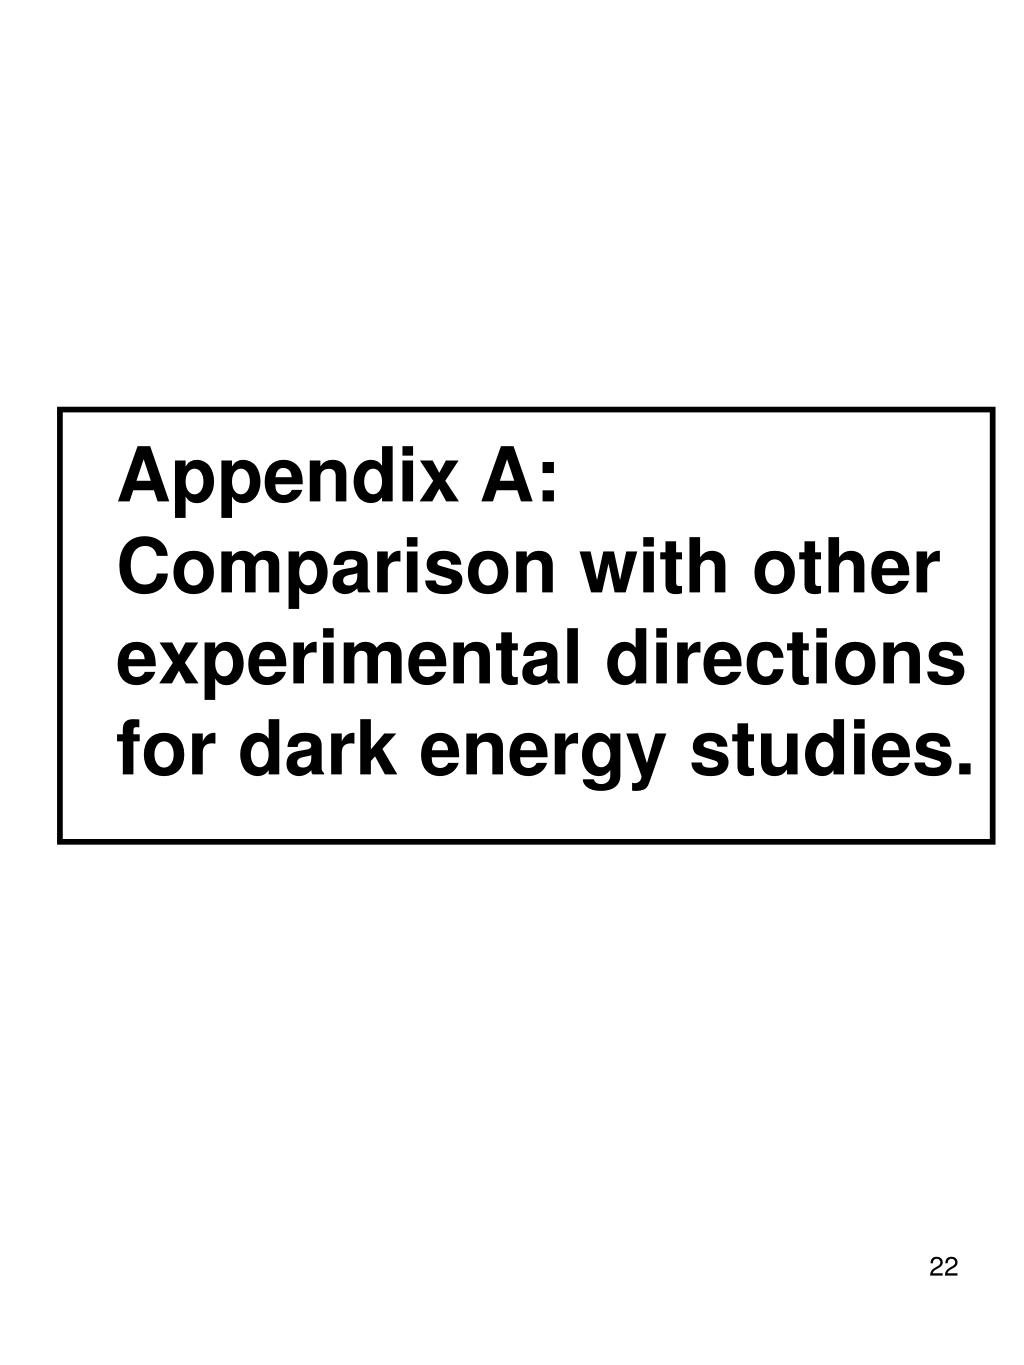 Appendix A: Comparison with other experimental directions for dark energy studies.